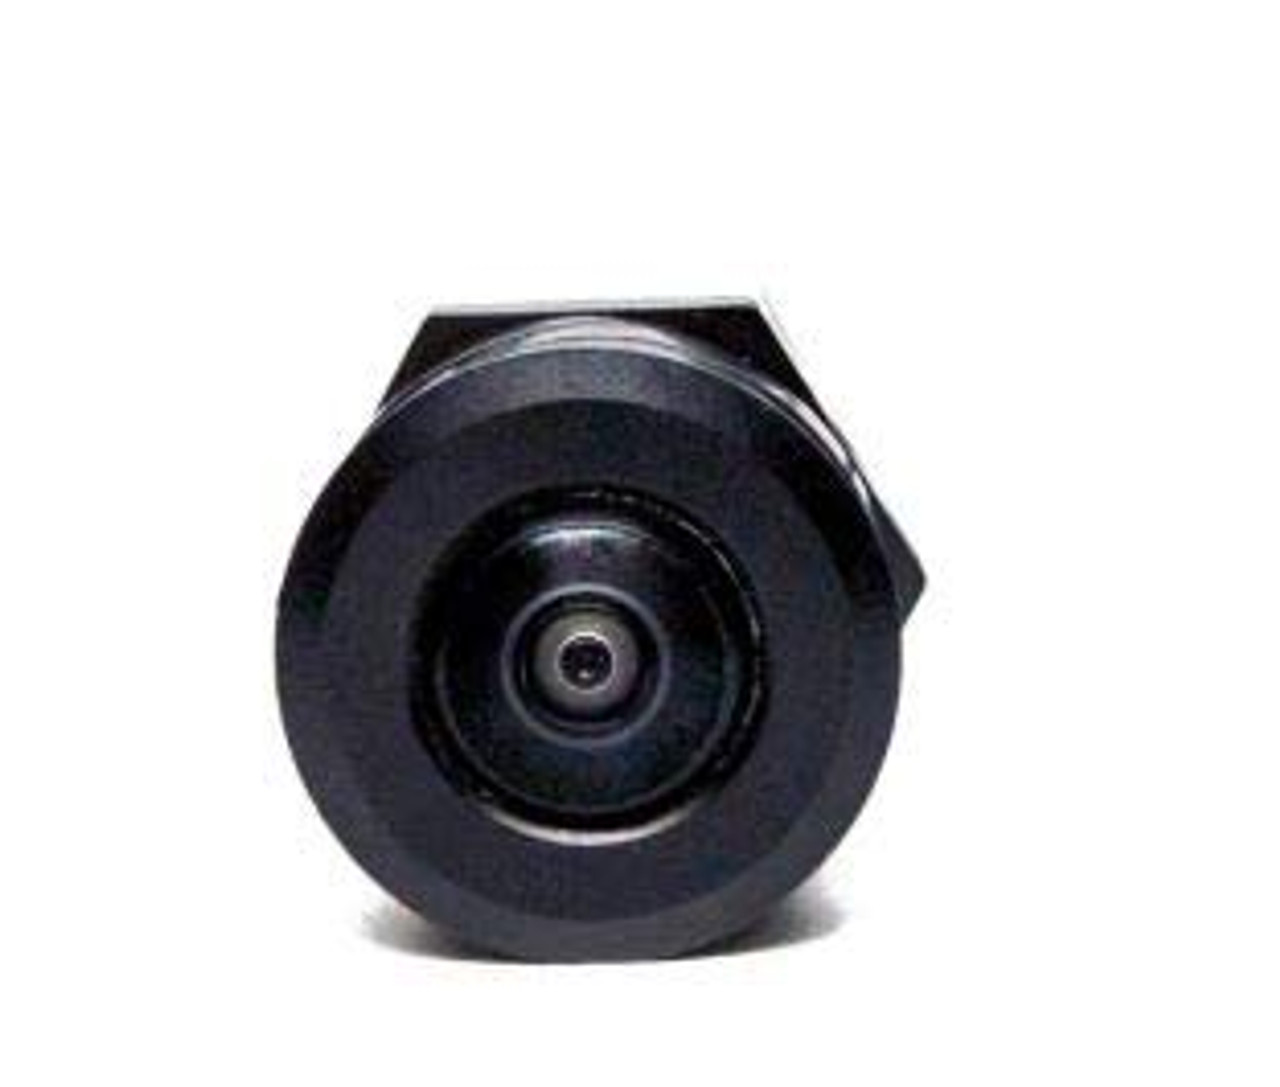 Flush Mount Backup Camera (FMVSS 111 Compliant) (RVS-659)